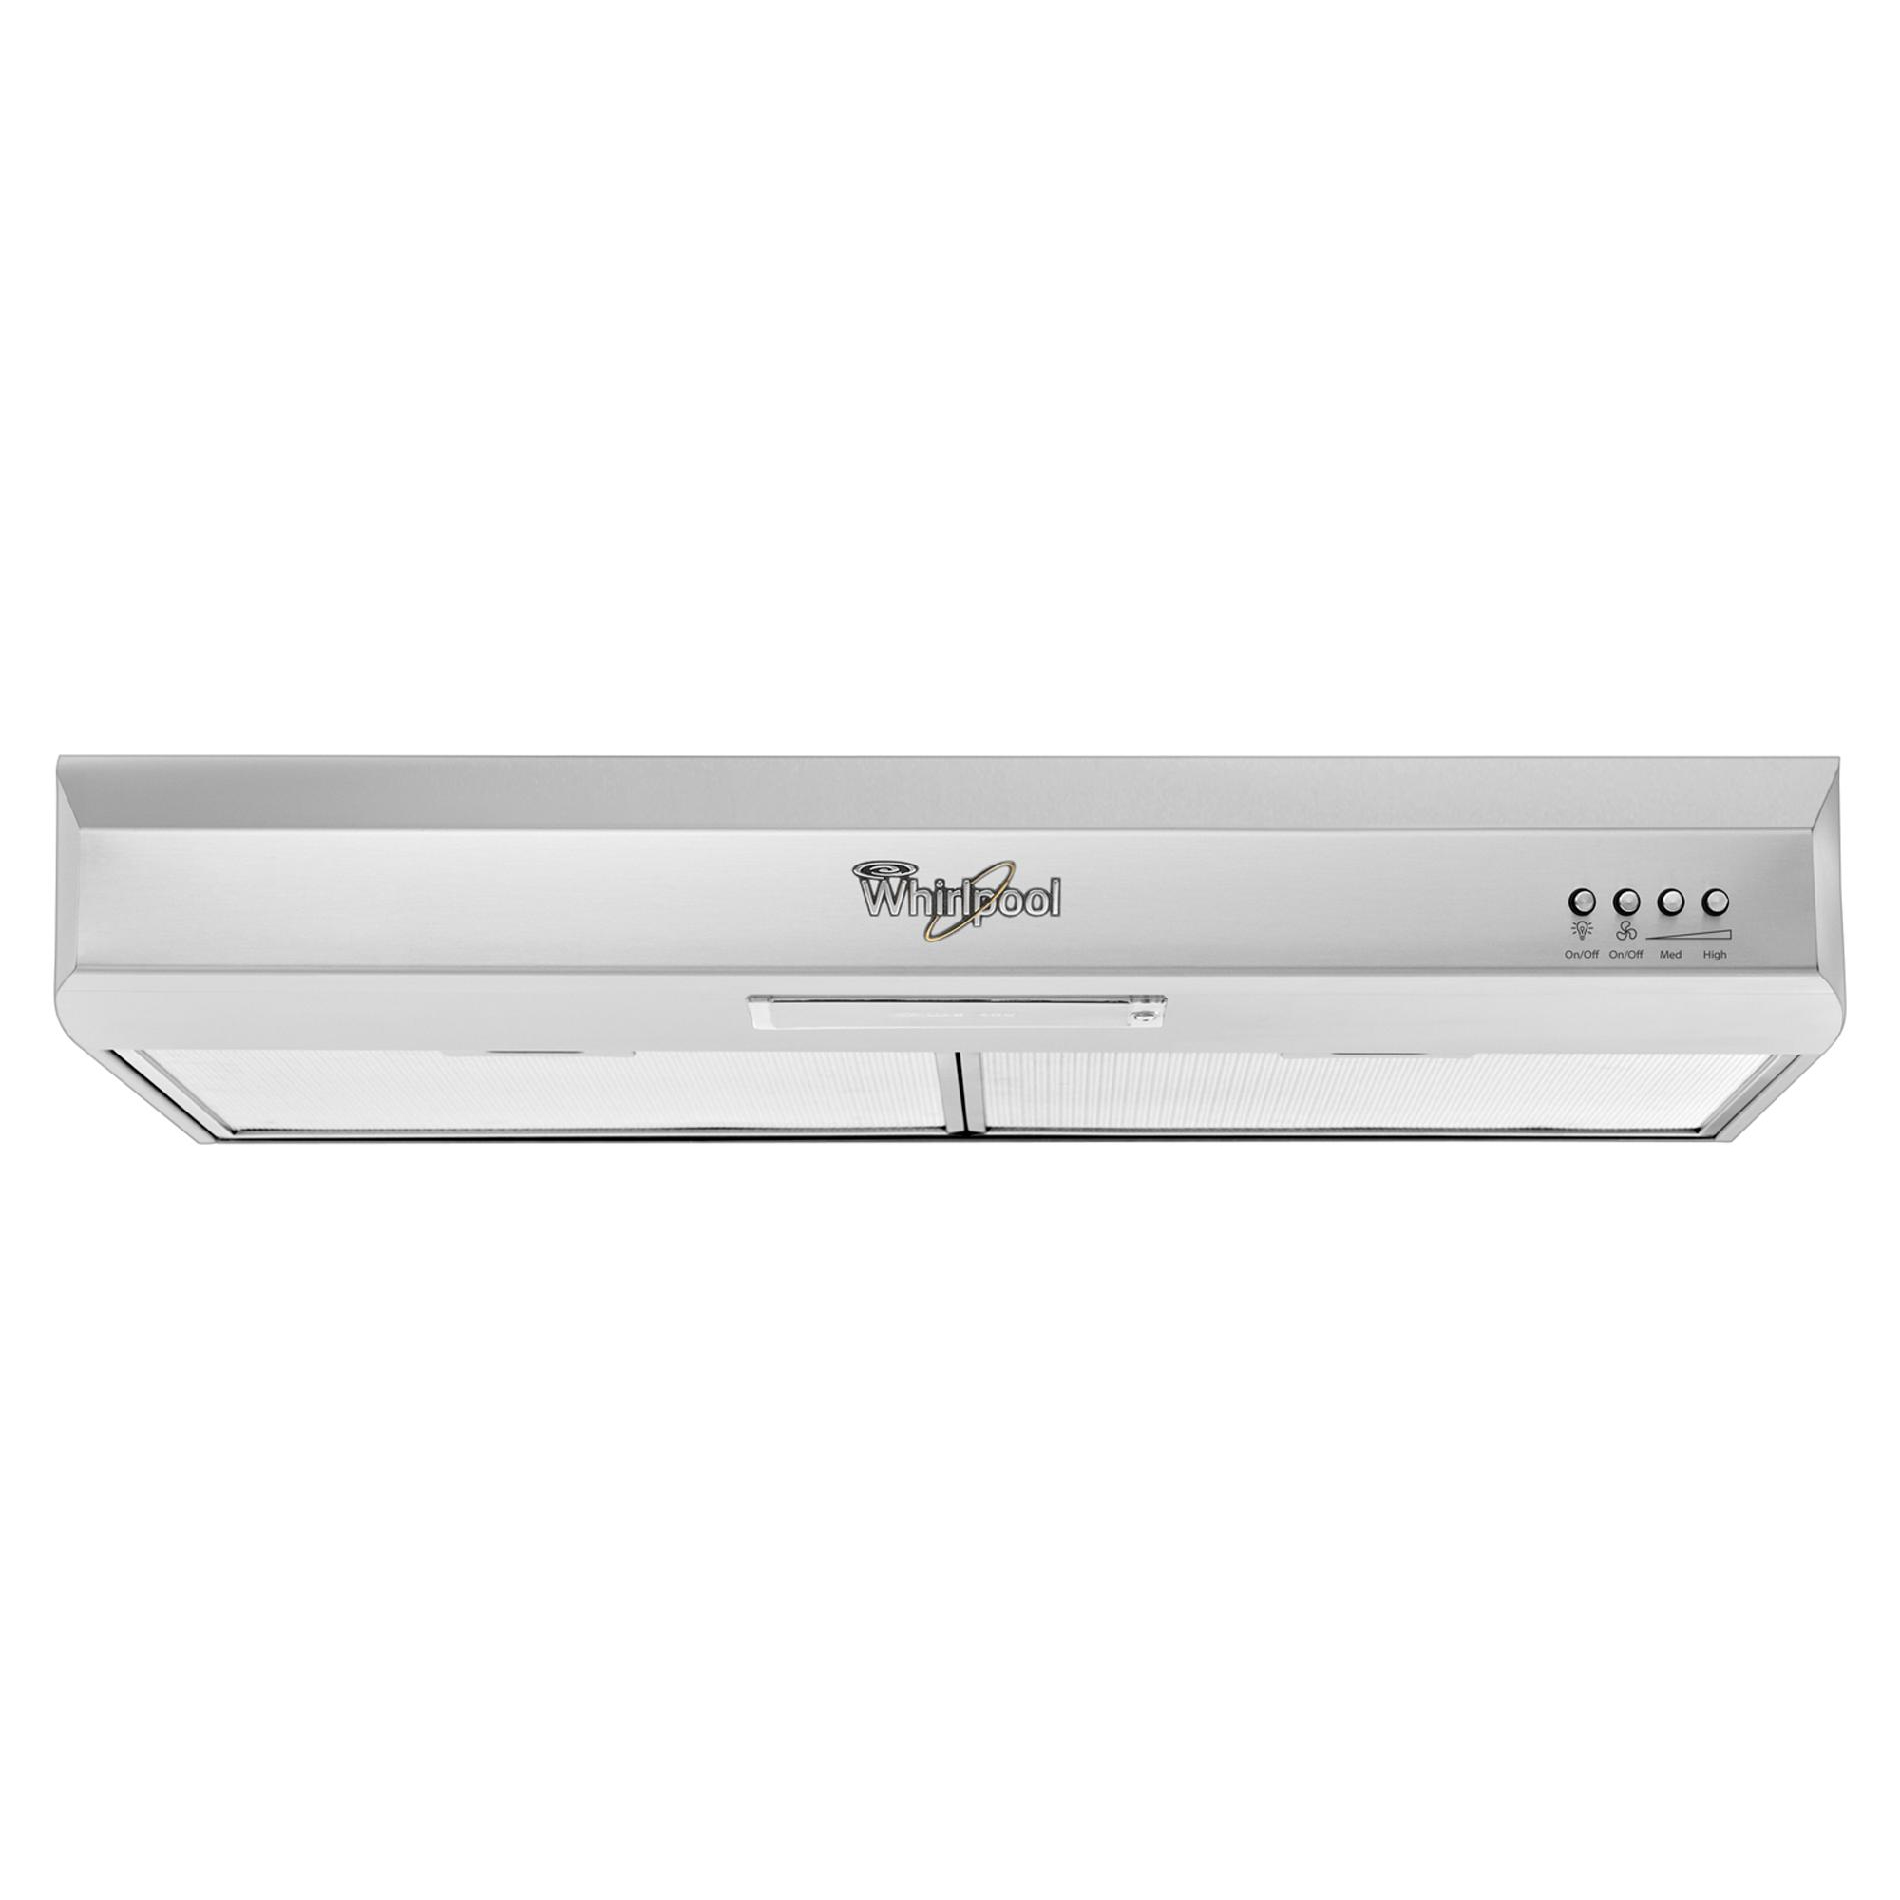 "Whirlpool GXU7130DXS Gold® 30"" Vented Under-Cabinet Range Hood - Stainless Steel"